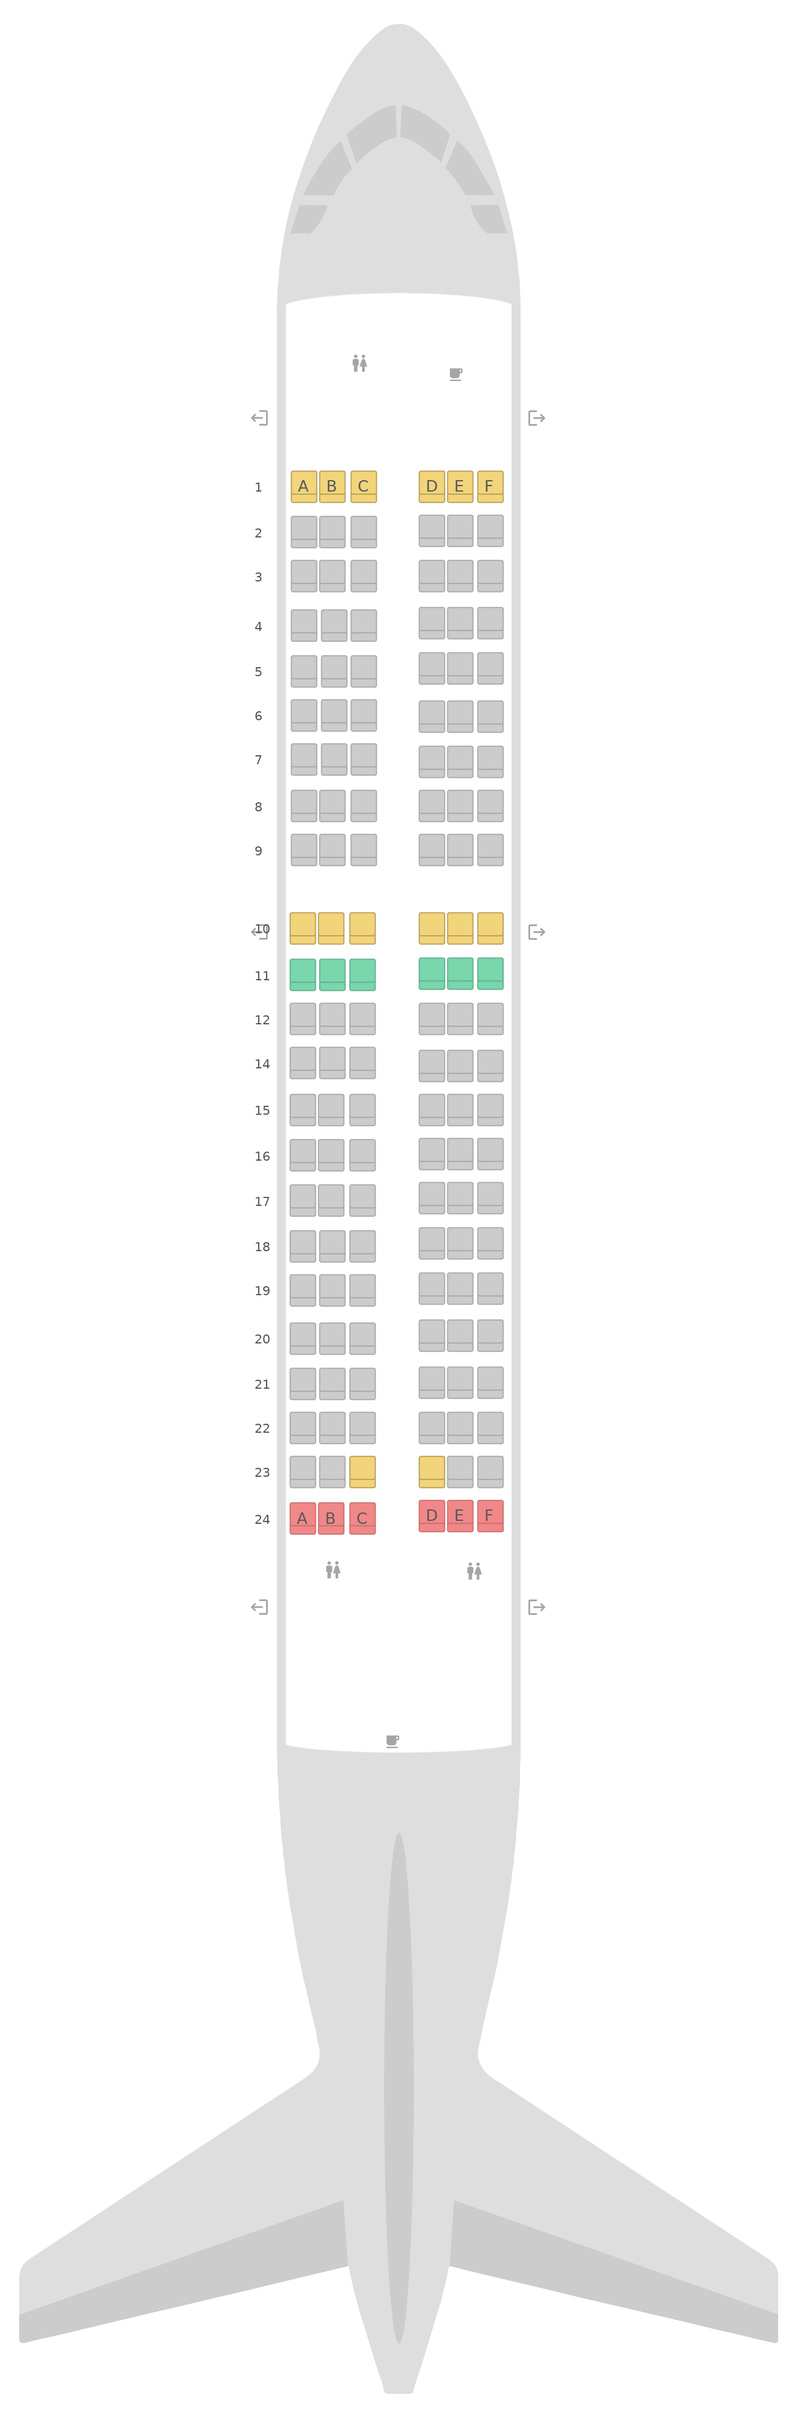 Seat Map Aegean Airlines Airbus A319